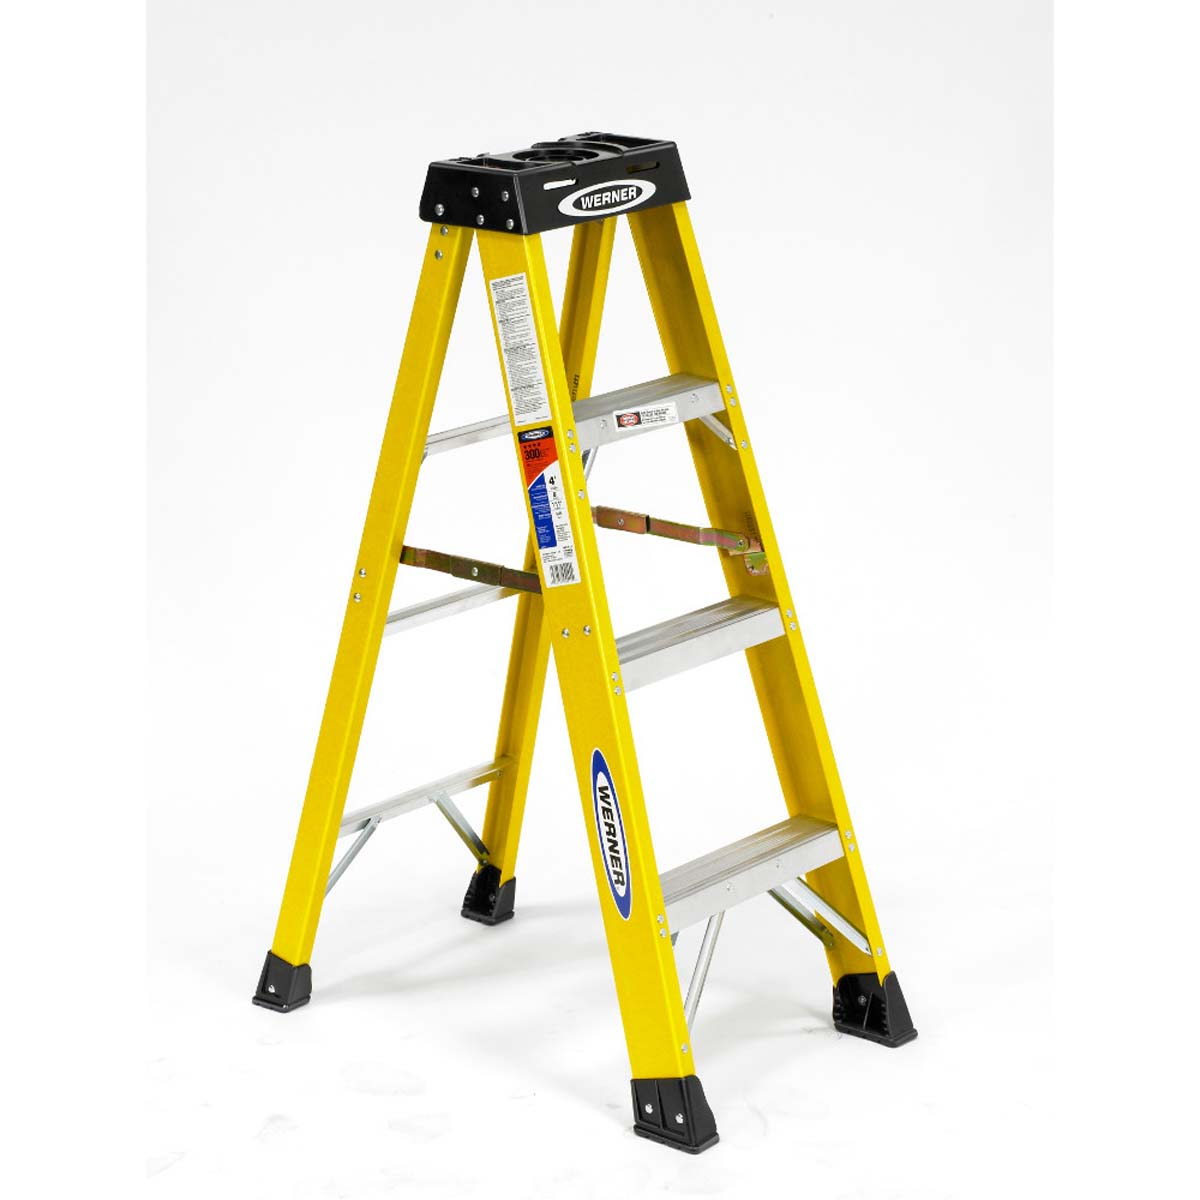 Fiberglass 4 ft Step Ladder  -